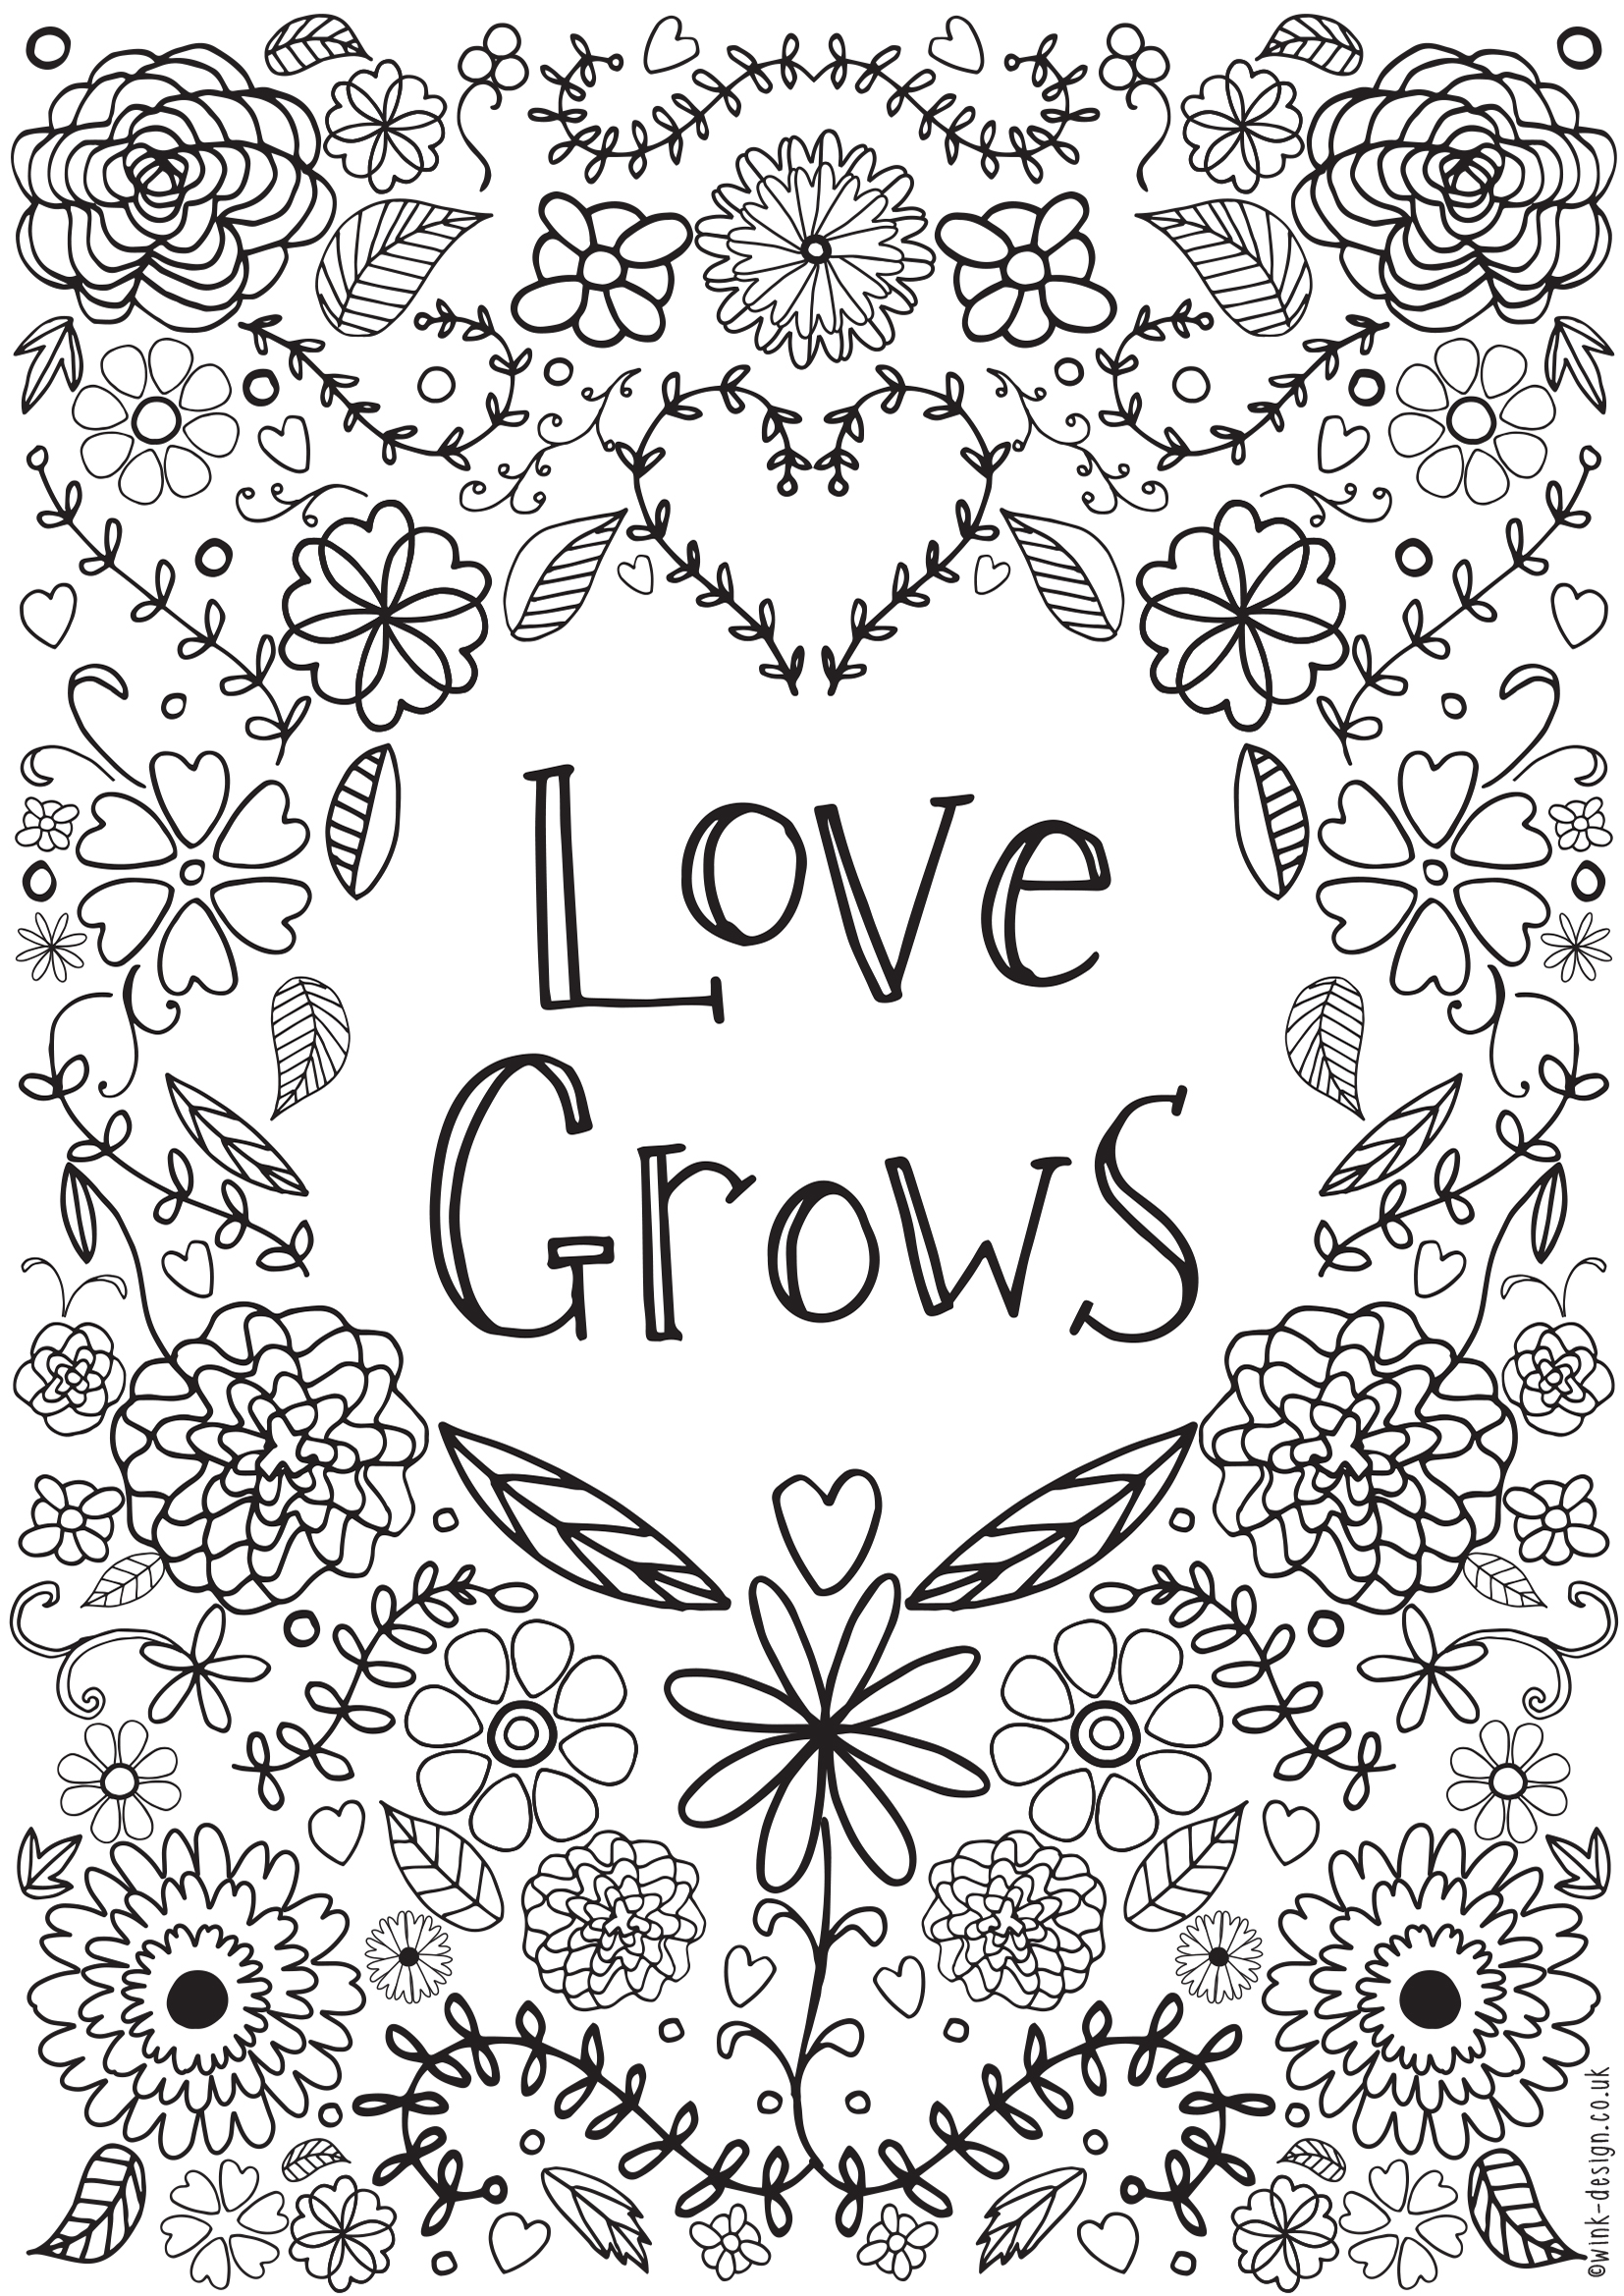 Free Printable Adult Colouring Pages - Inspirational Quotes for the ...